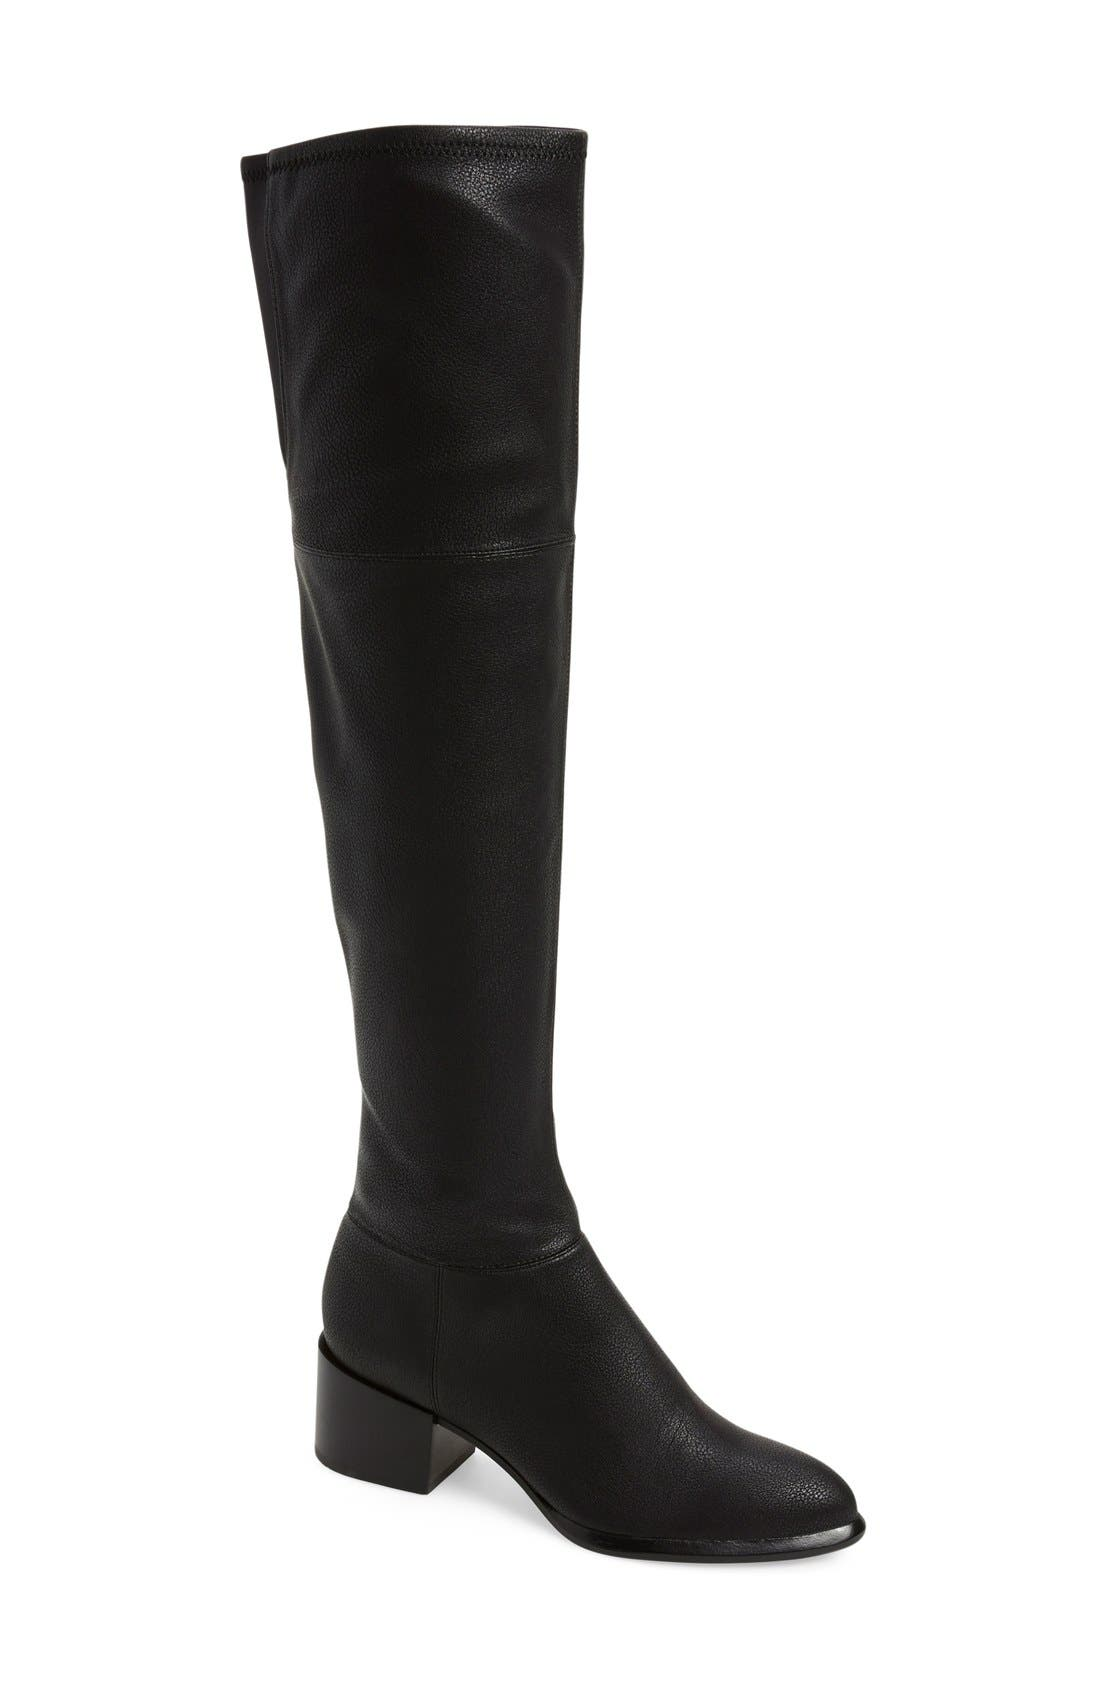 'Nani' Over The Knee Boot,                             Main thumbnail 1, color,                             001